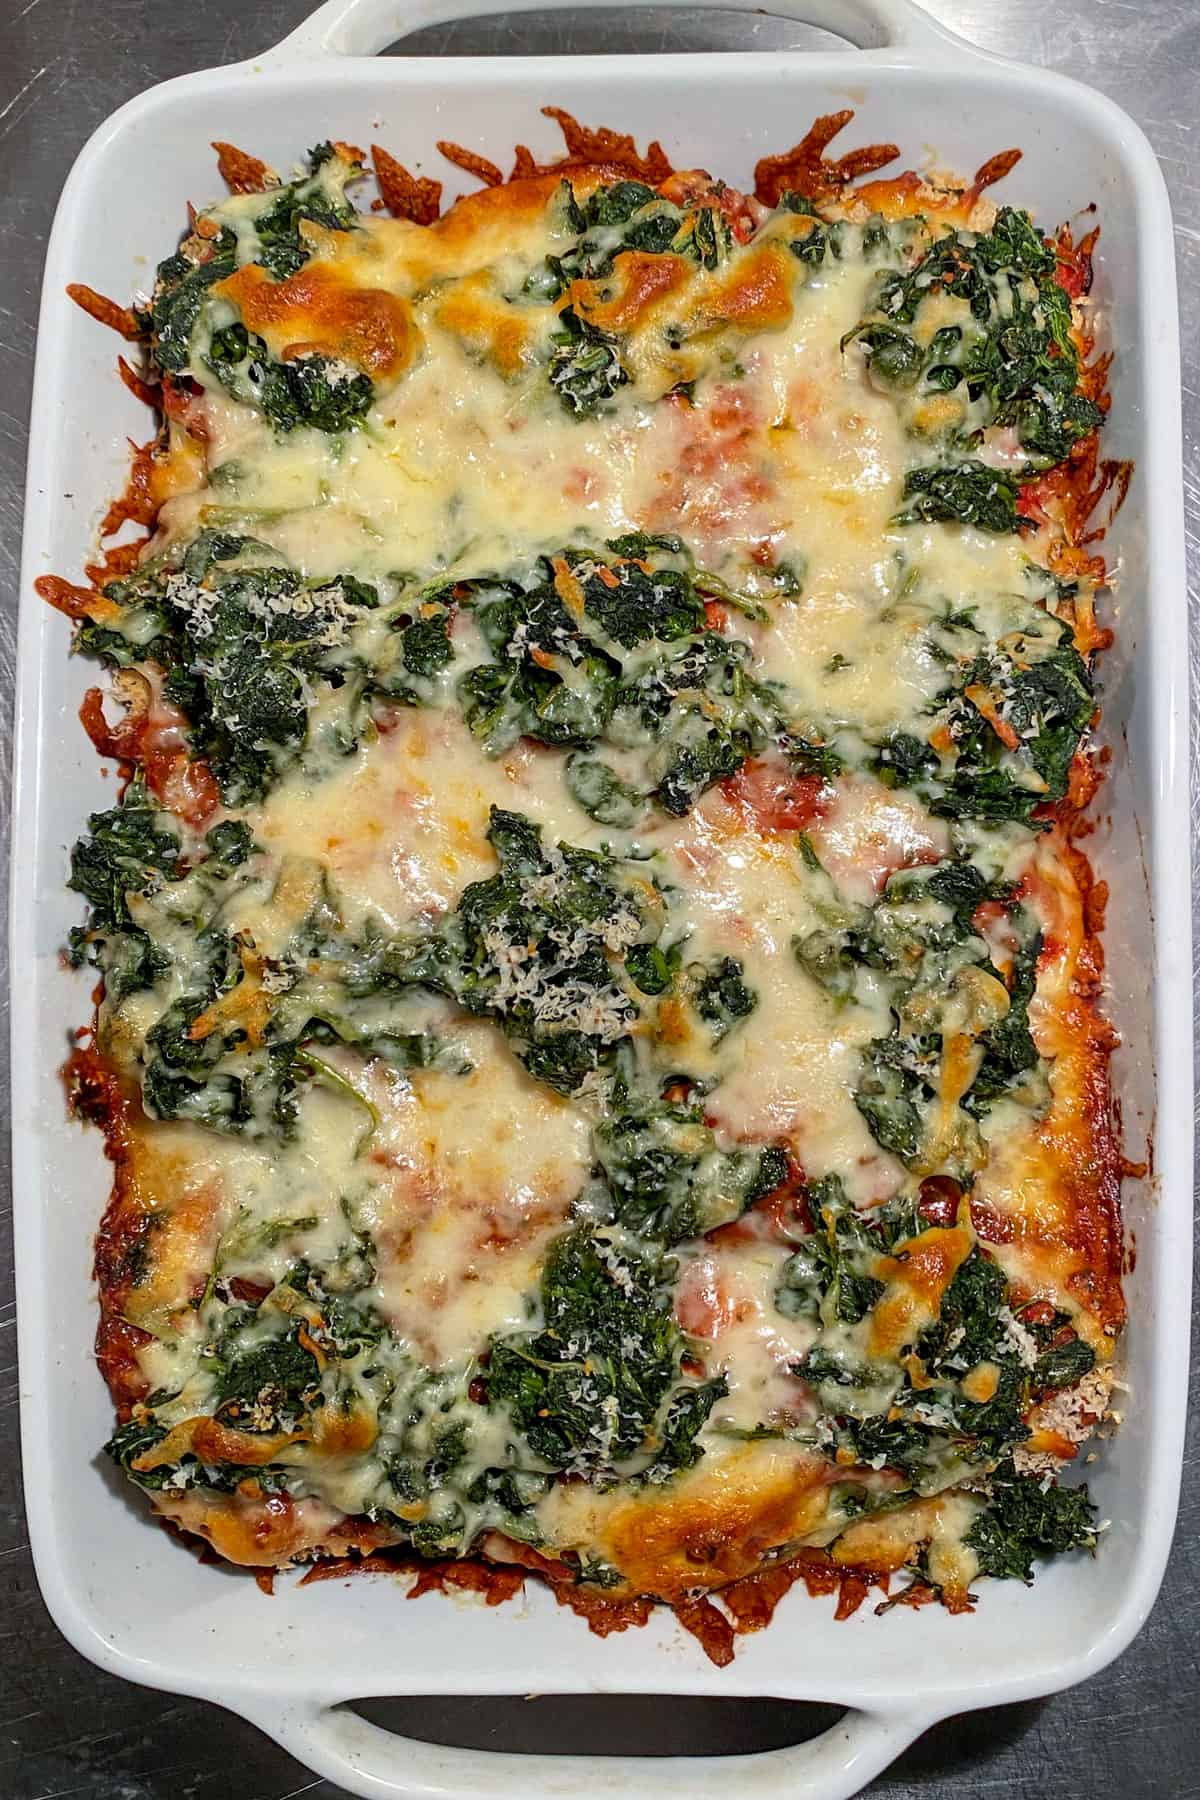 baked eggplant parmesan topped with spinach and cheese, in a white rectangular casserole dish, seen from above